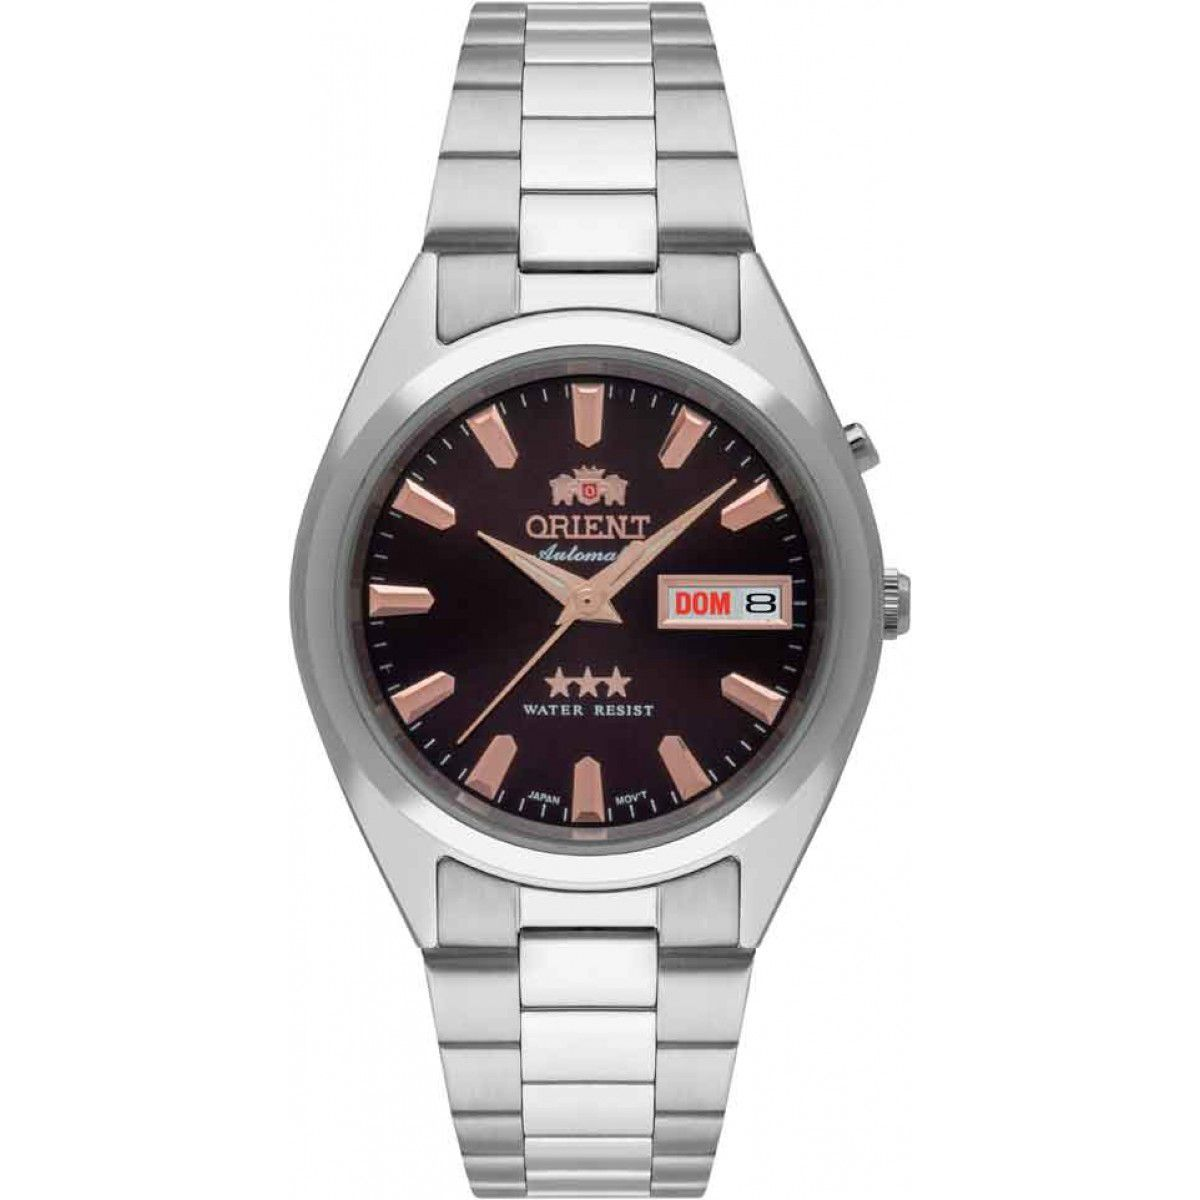 Relógio Masculino Orient Automatic Clássico 469SS084-N1SX